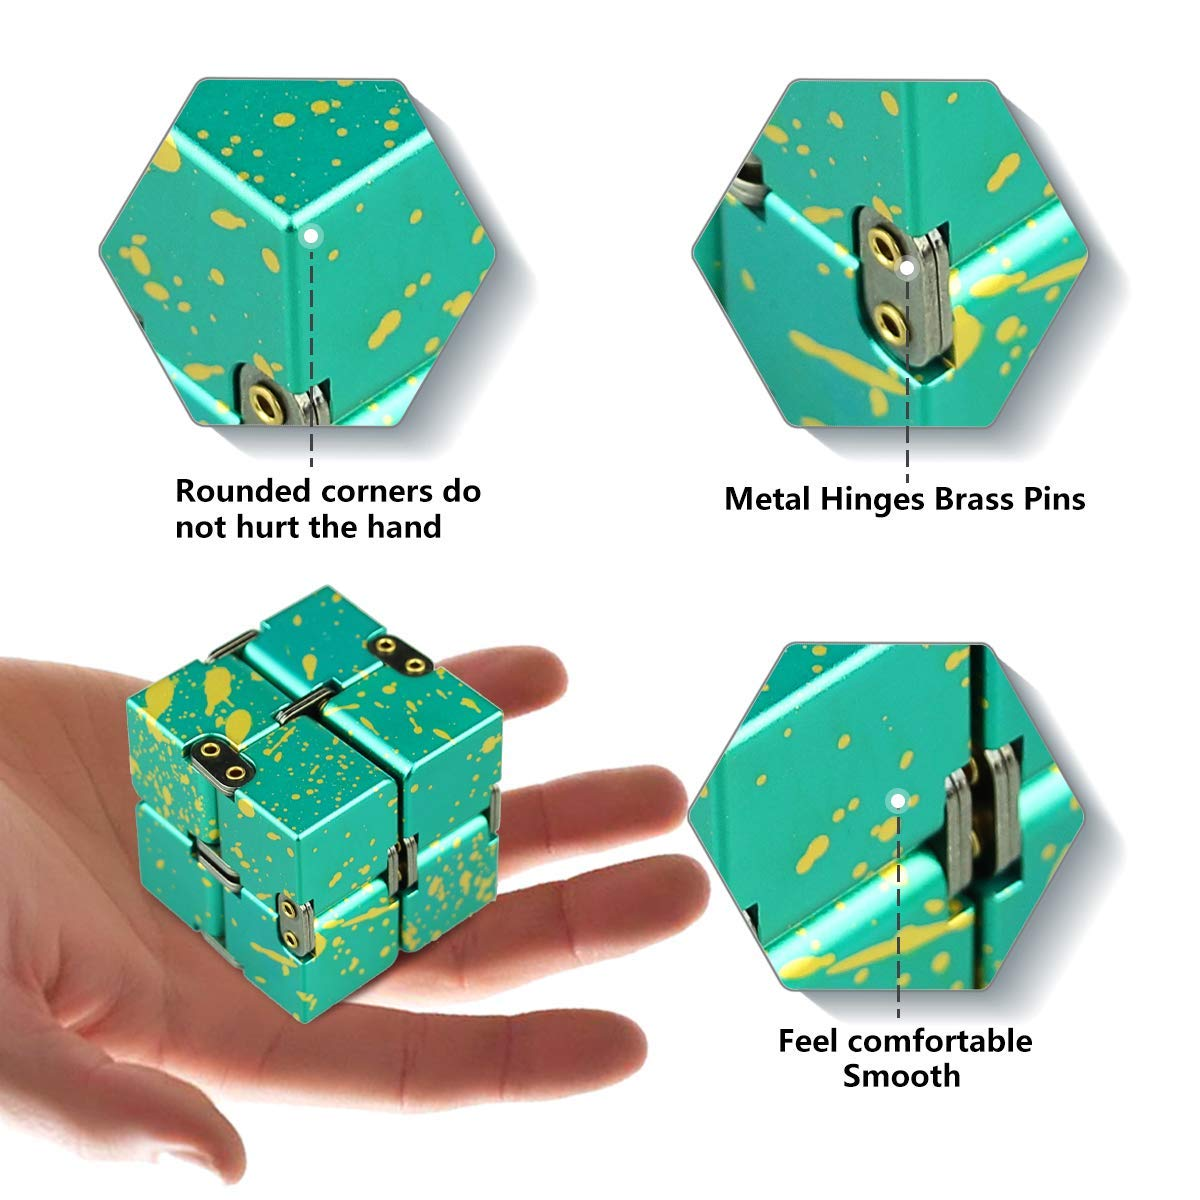 HELESIN Infinity Cube Fidget Toys Relaxation Office Stress Reducers for ADD, ADHD, Anxiety, Autism Adult & Kids, Aluminium Alloy, Camouflage by HELESIN (Image #3)